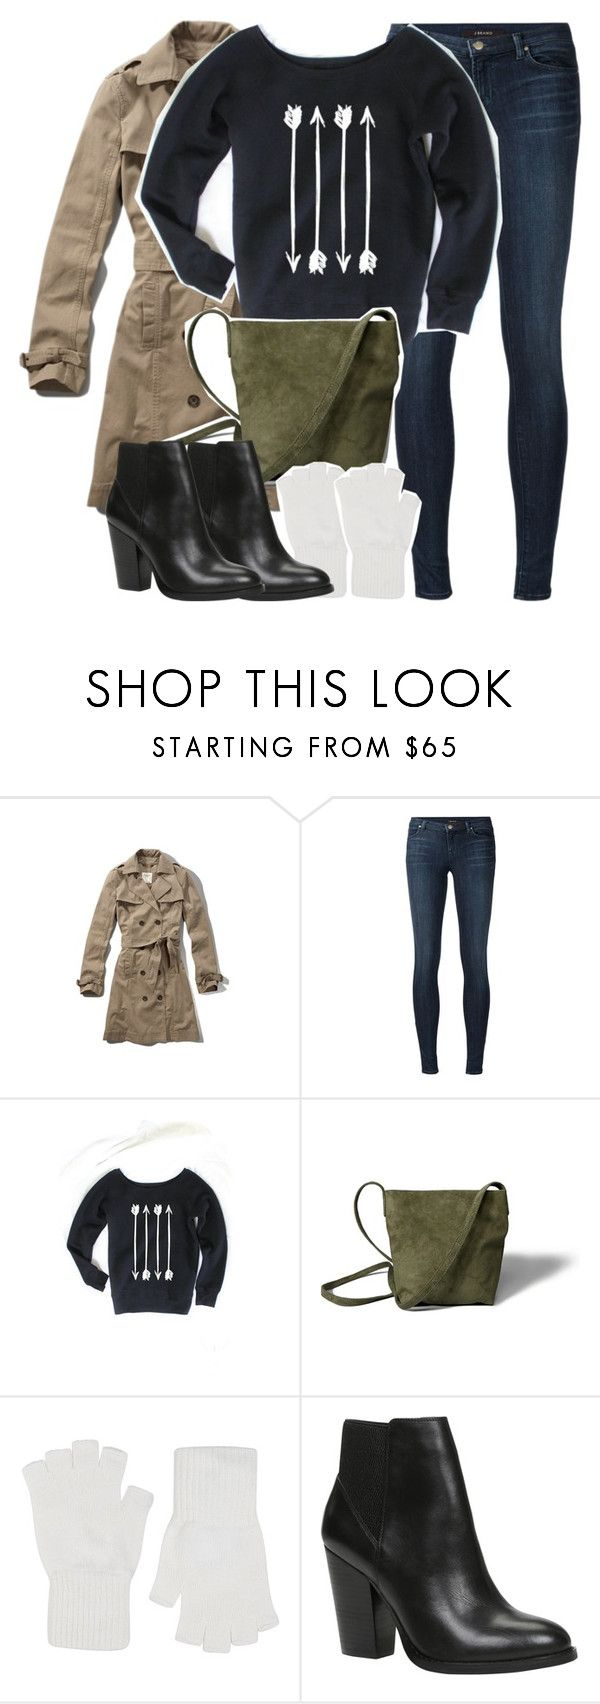 """""""Allison Inspired Winter Outfit"""" by veterization ❤ liked on Polyvore featuring Abercrombie & Fitch, J Brand, Harrods and ALDO"""